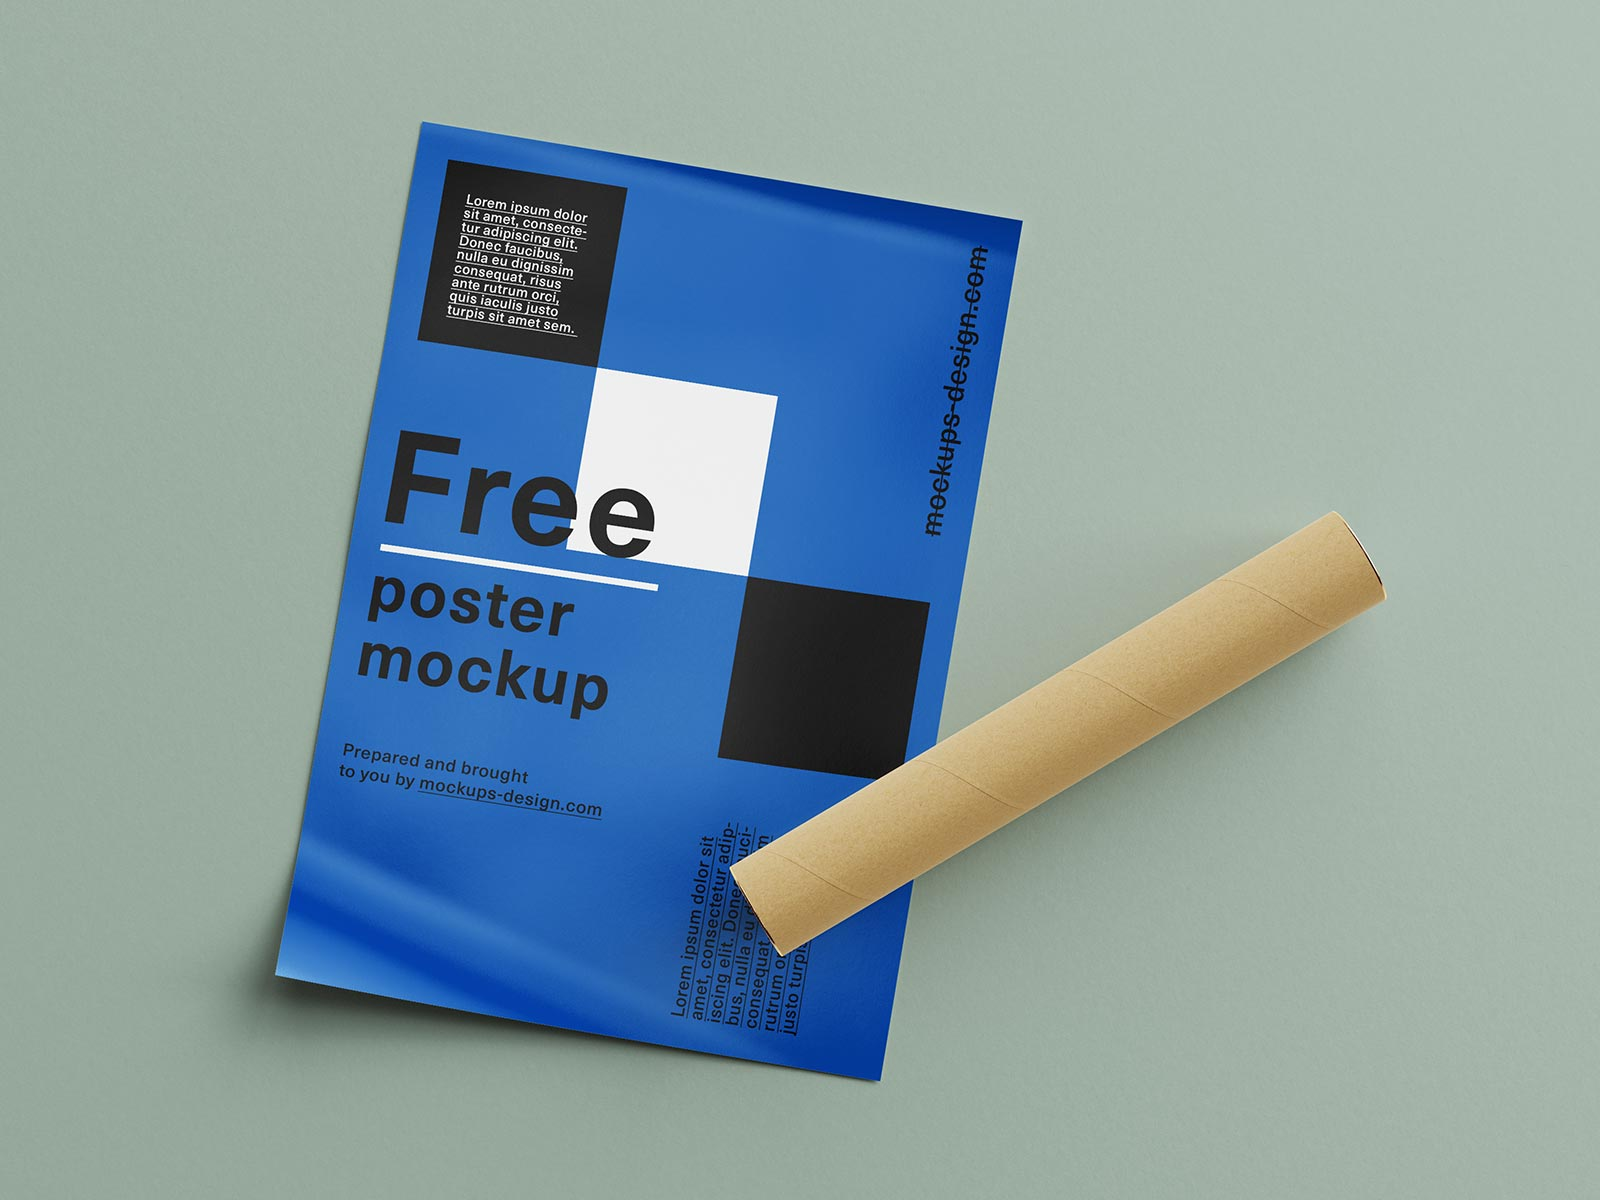 Free Curled Up Poster & Paper Tube Mockup PSD Set (1)